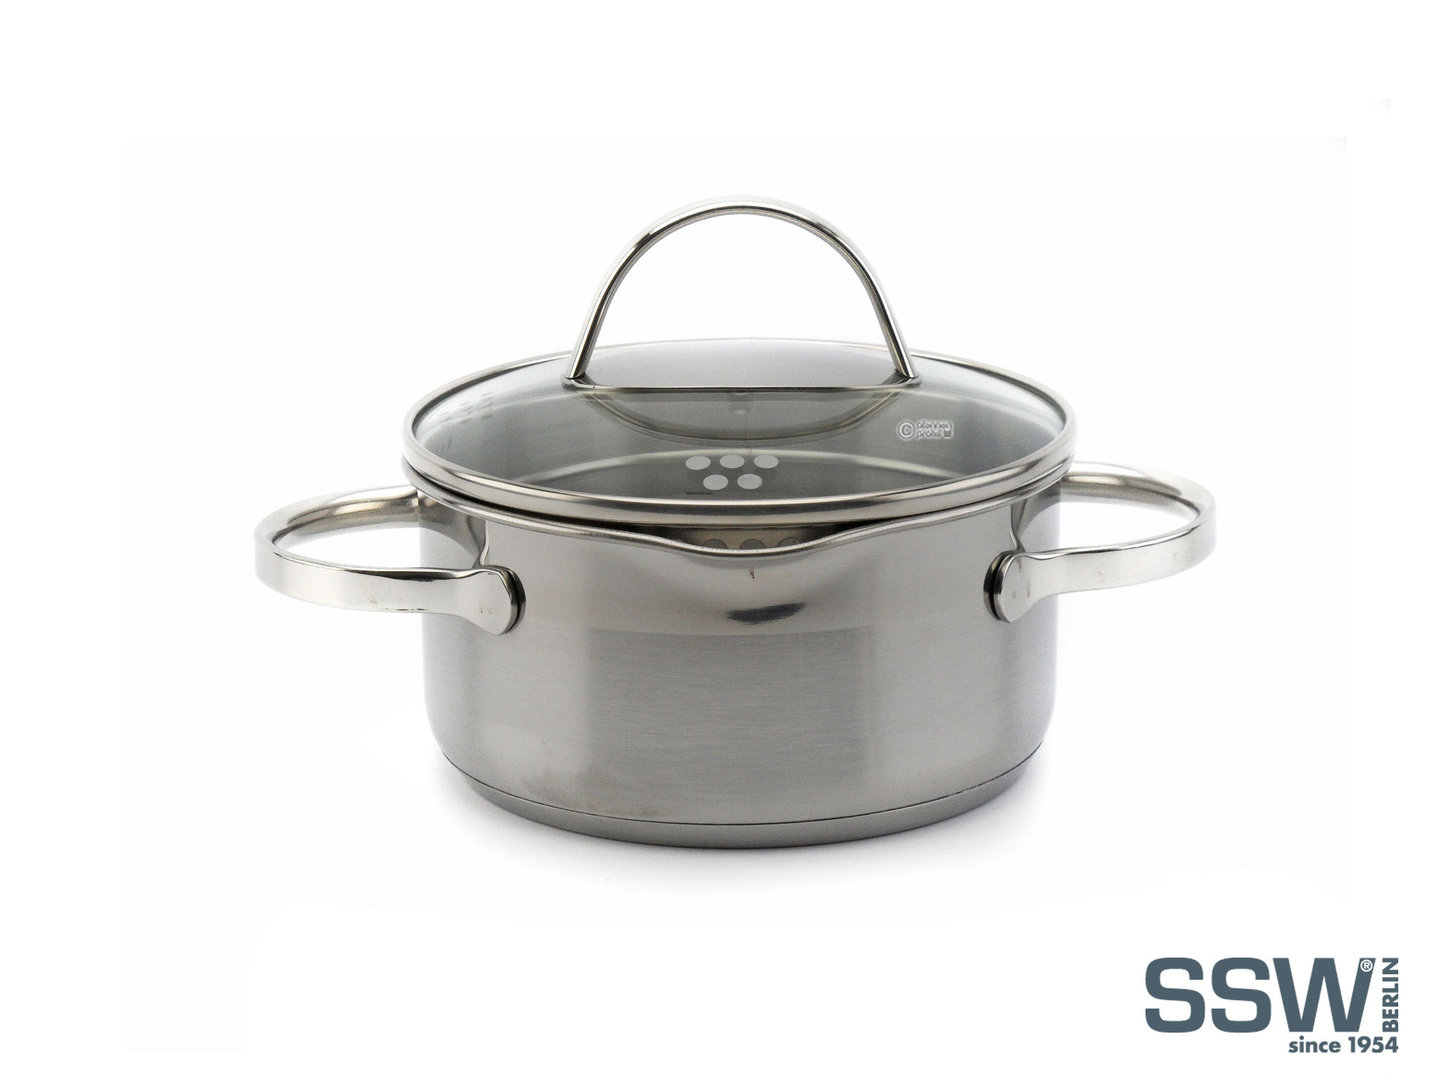 SSW easy straining casserole COMFORT 14 cm 1 L stainless steel induction